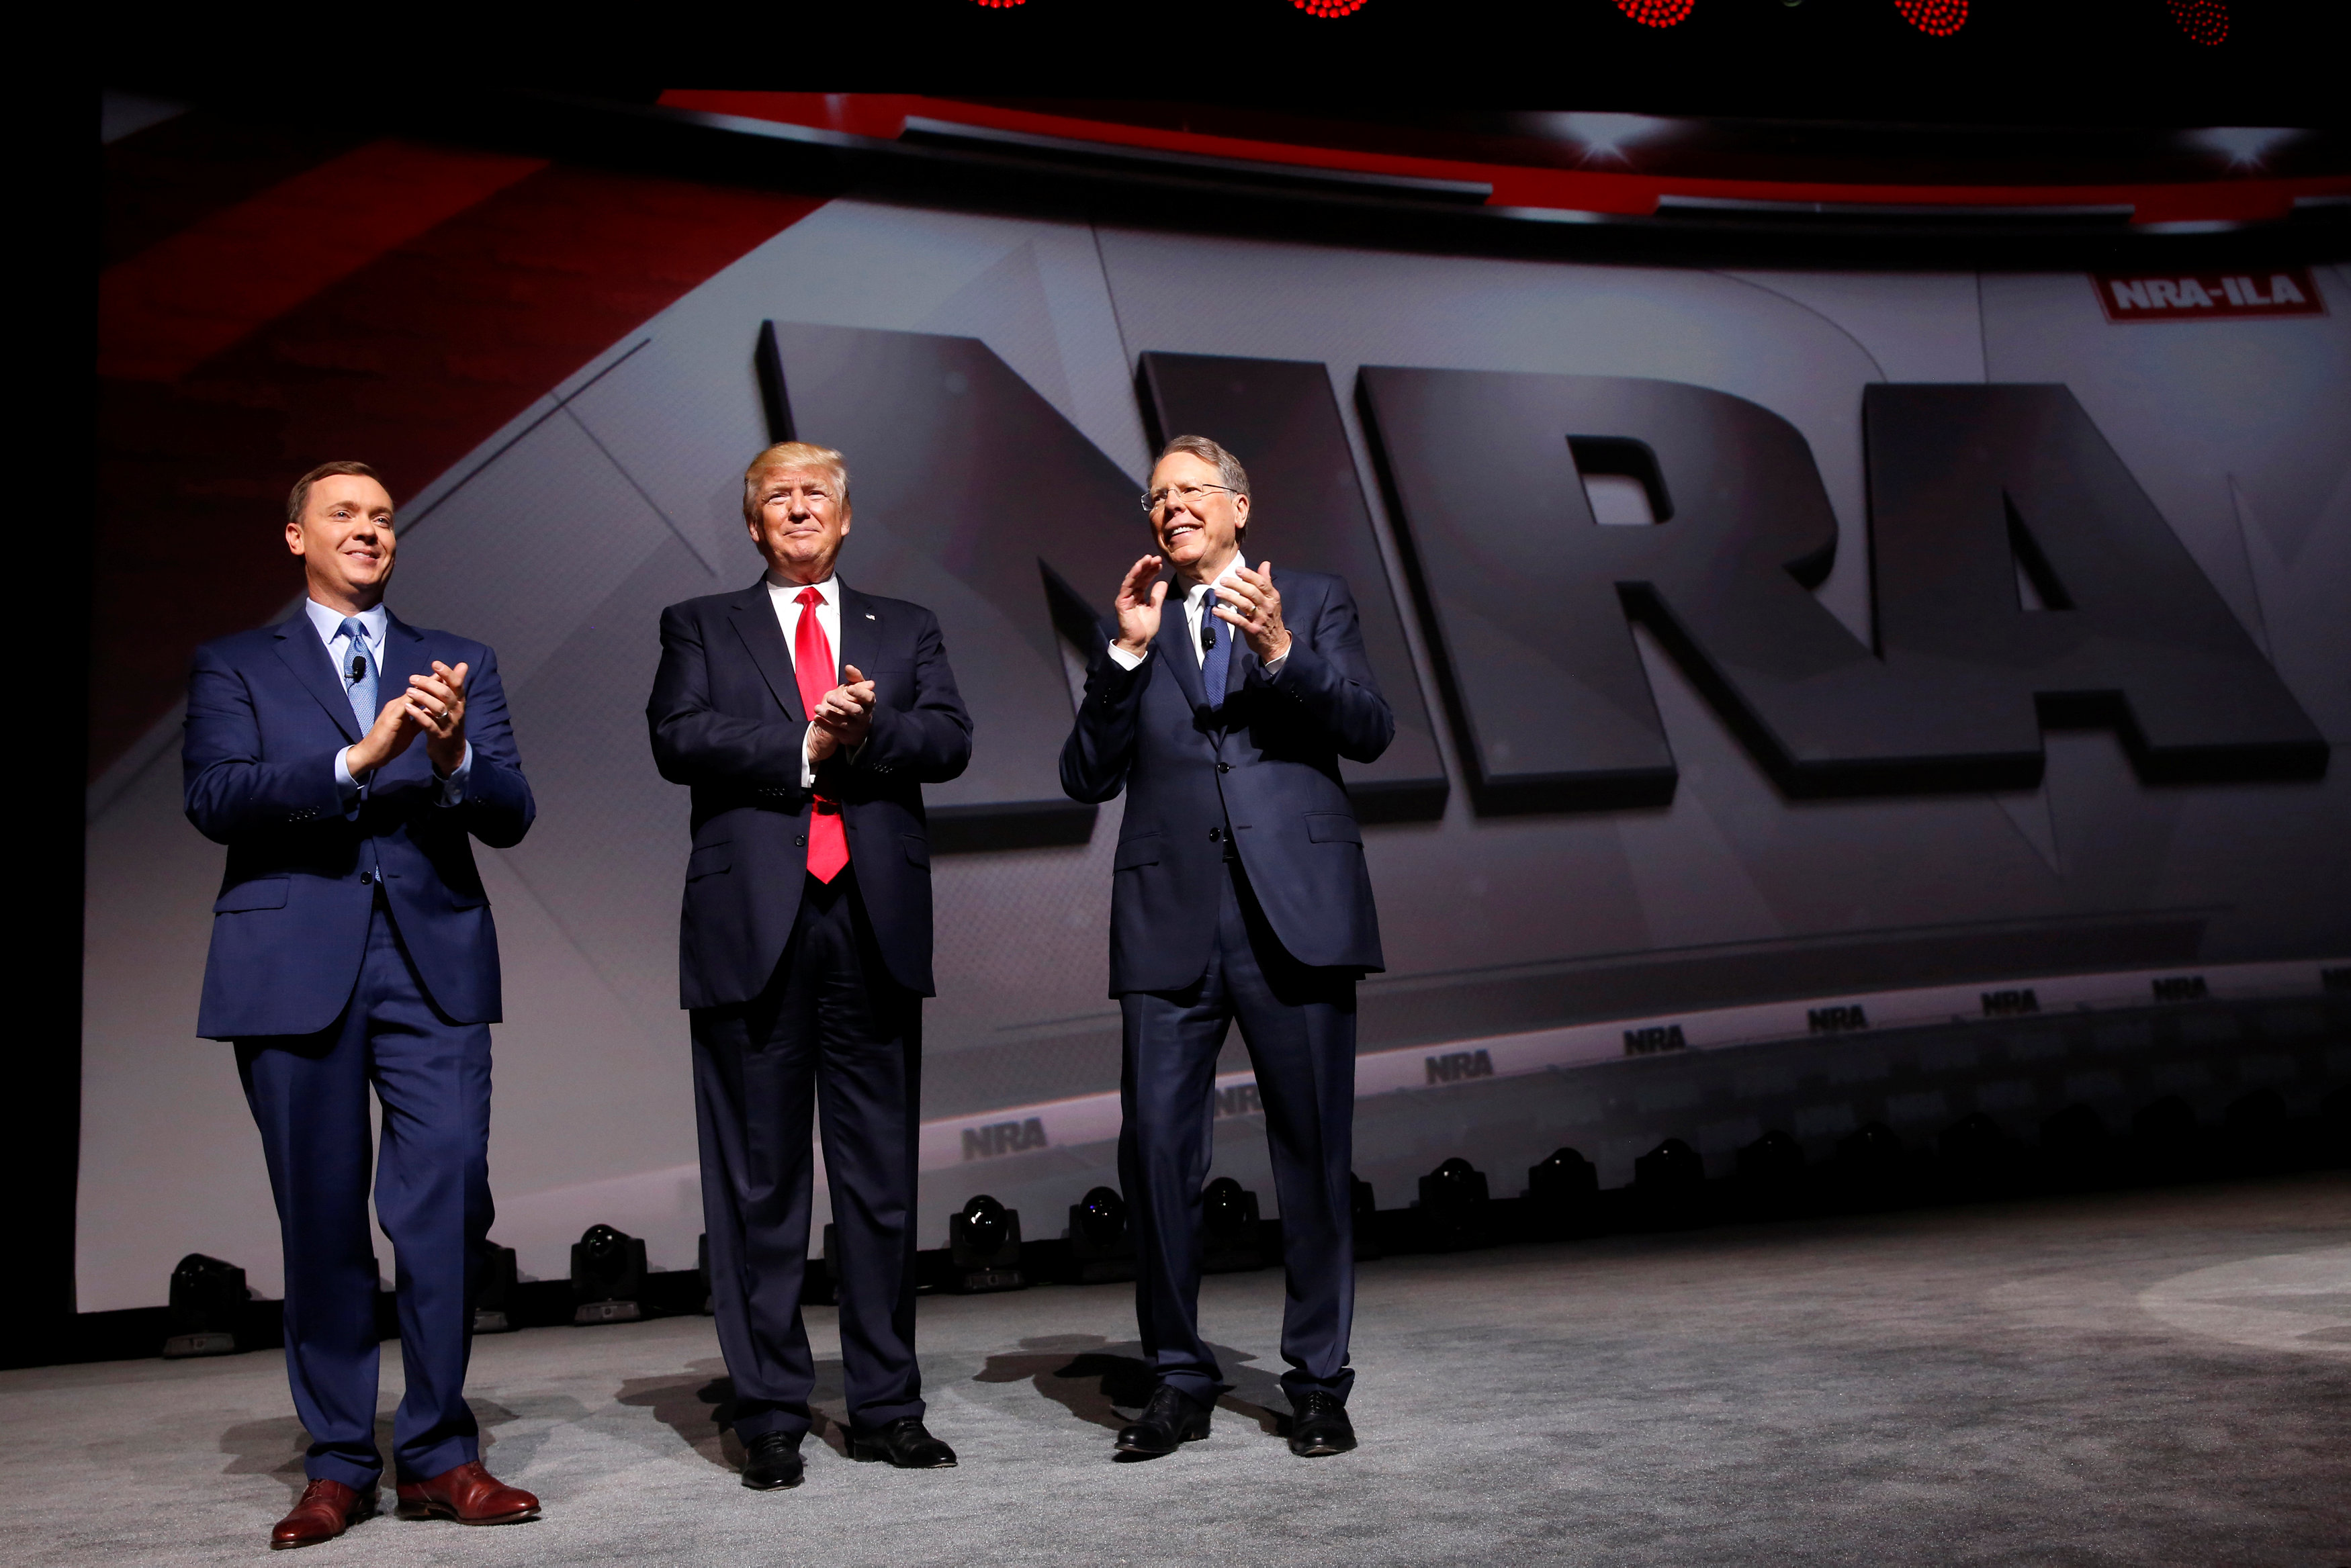 NRA Executive Director Chris Cox (L) and Executive Vice President and CEO Wayne LaPierre (R) welcome U.S. President Donald Trump (C) onstage to deliver remarks at the National Rifle Association (NRA) Leadership Forum at the Georgia World Congress Center in Atlanta, Georgia, U.S., April 28, 2017. REUTERS/Jonathan Ernst